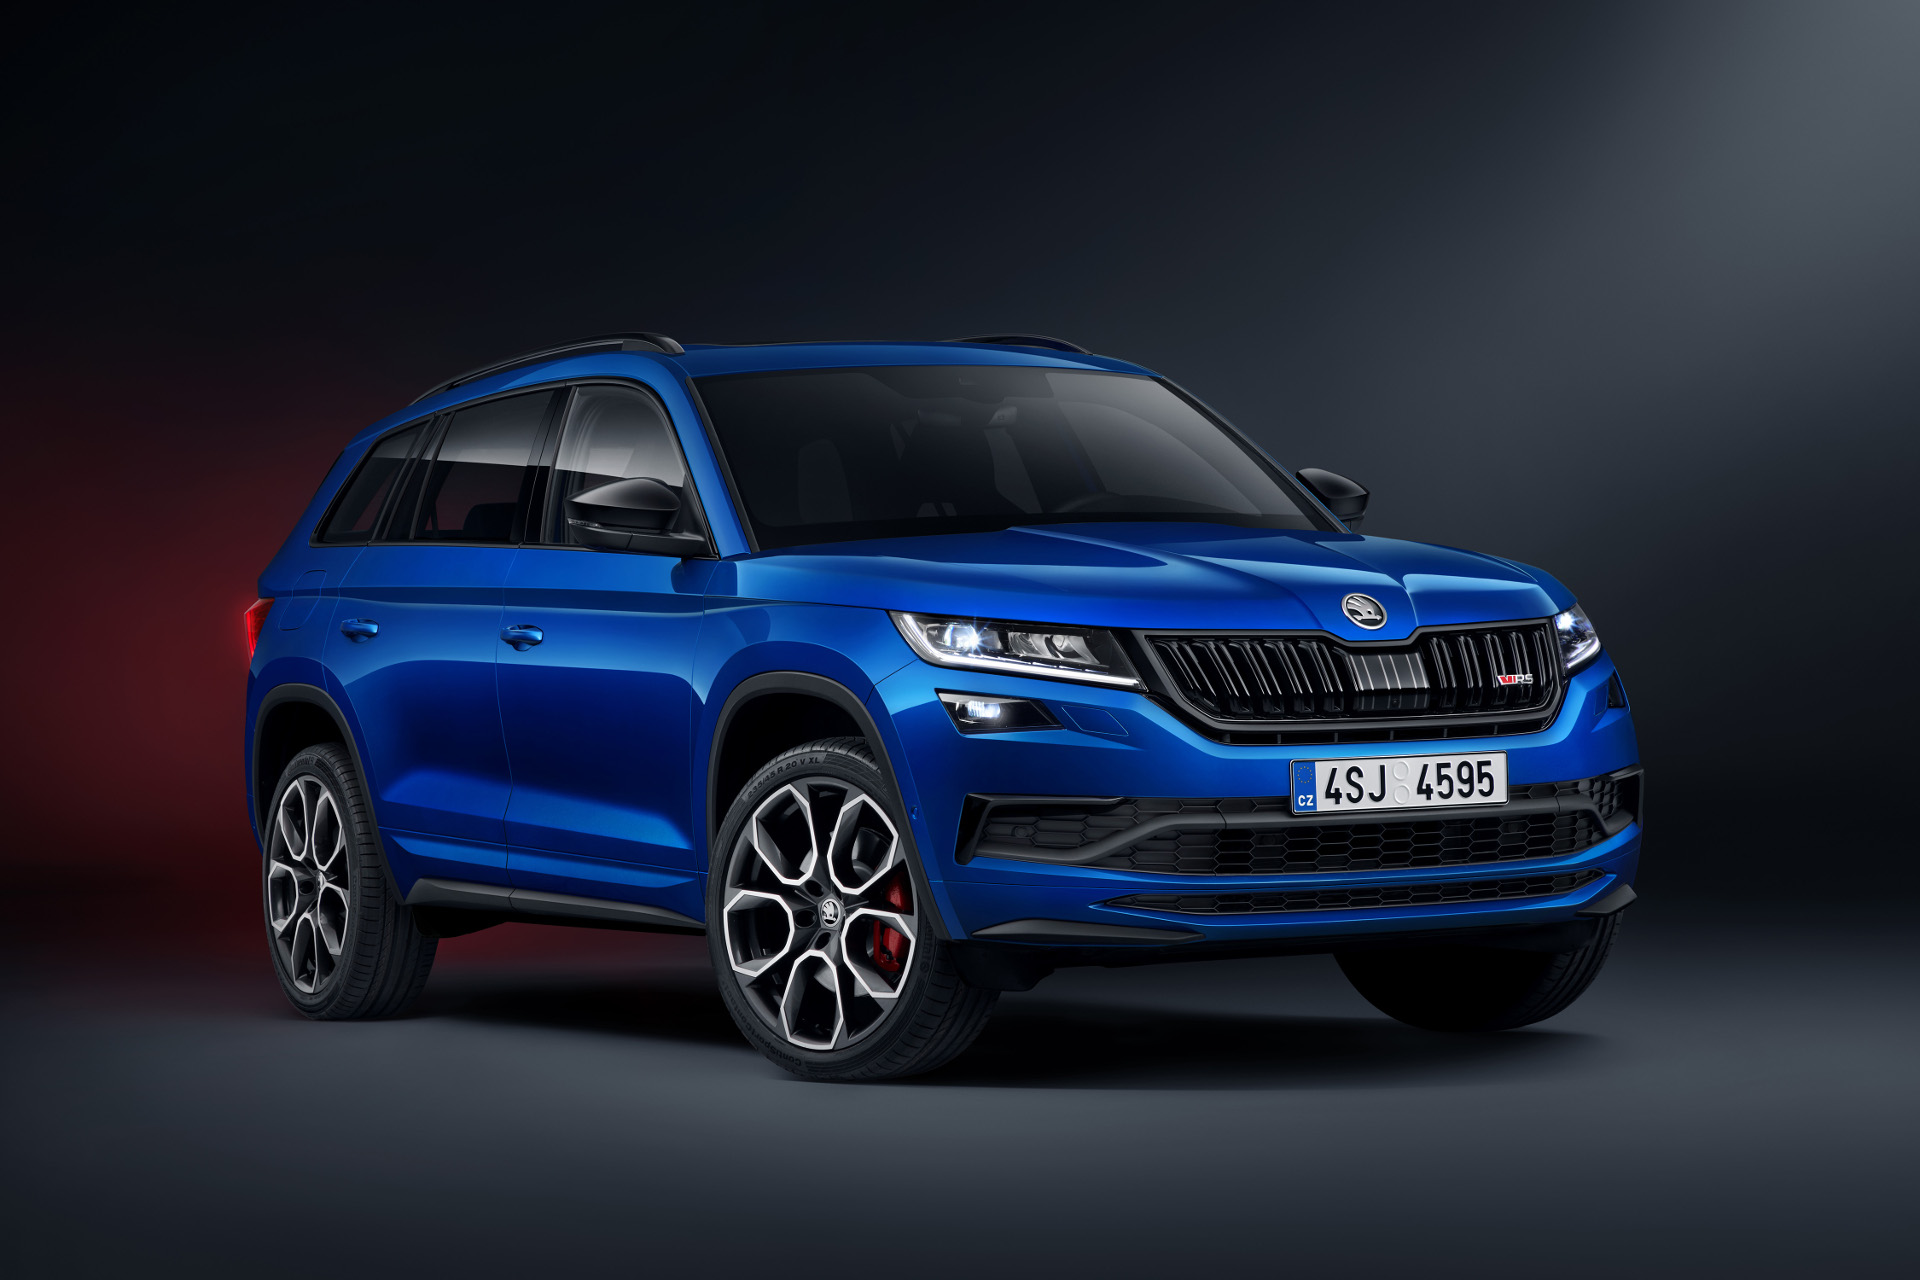 kodiaq_rs_paris_01 1920